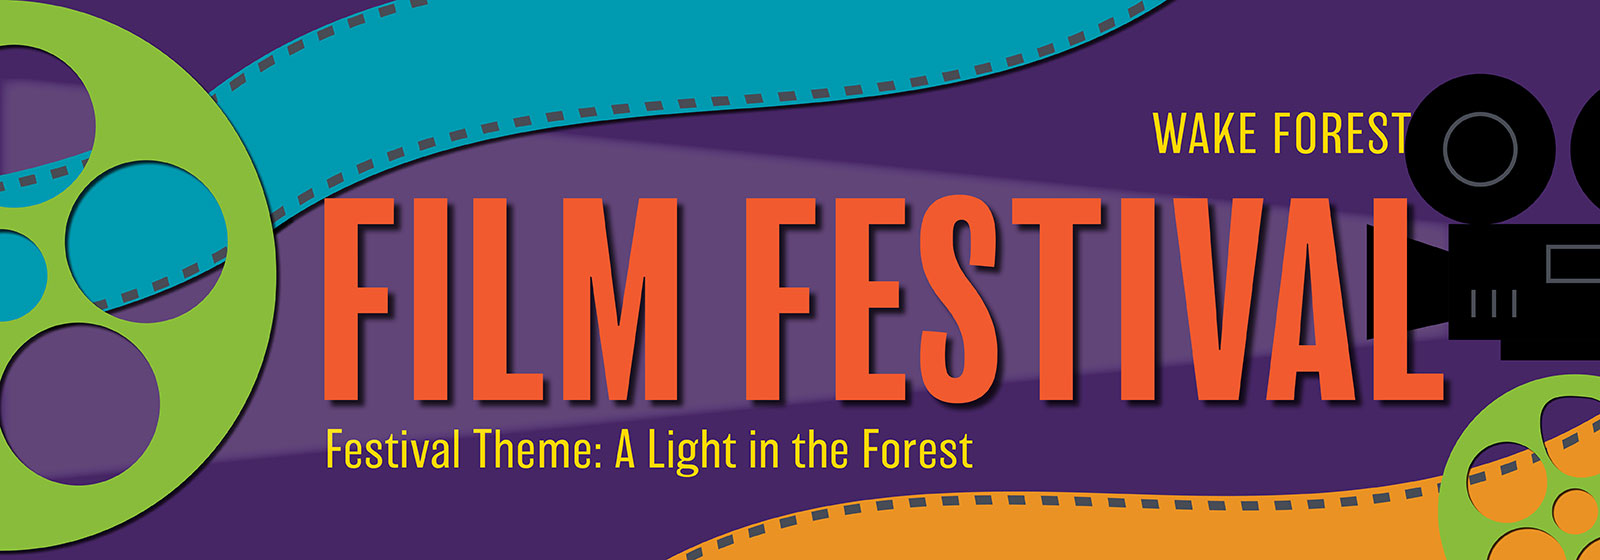 Wake Forest Film Festival